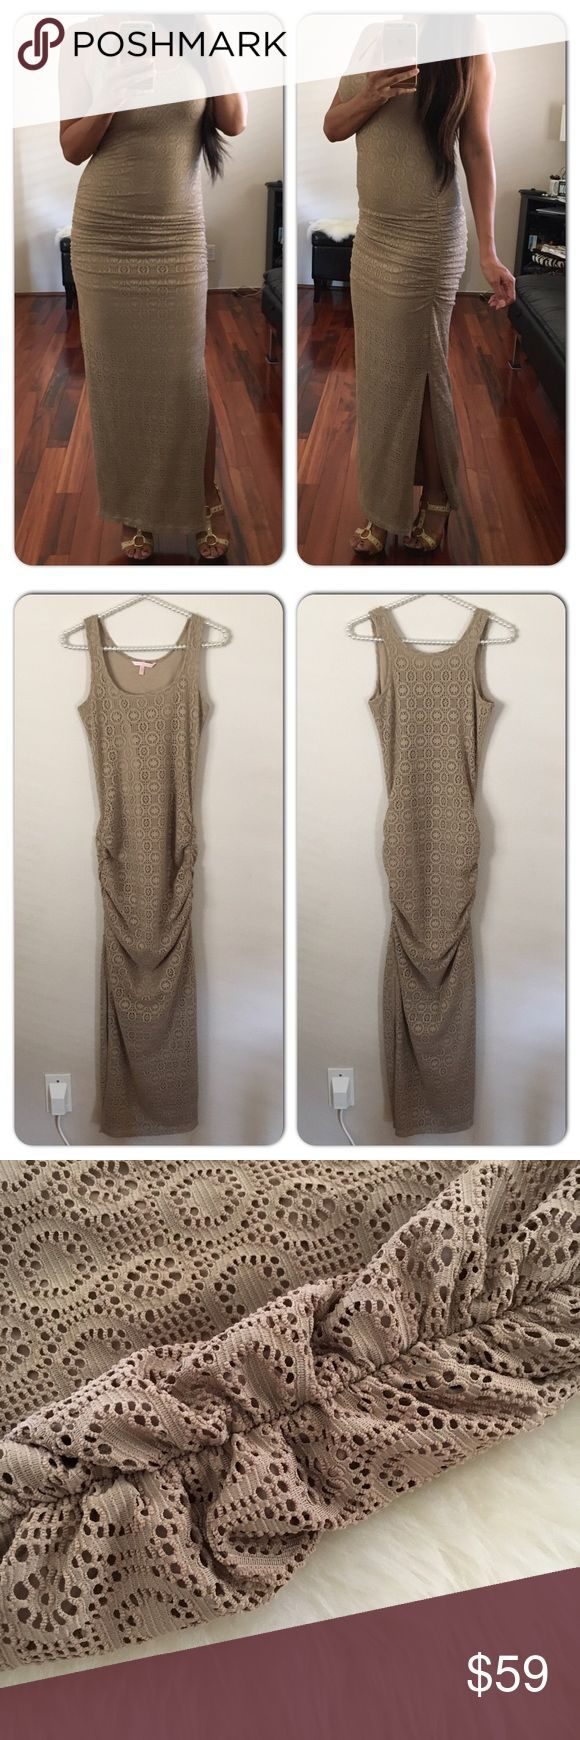 VICTORIA'S SECRET Crochet Maxi Dress Nude colored crochet maxi dress with side ruching by the hips. Fully lined. Slits on both sides. Worn and washed once, like new. Victoria's Secret Dresses Maxi